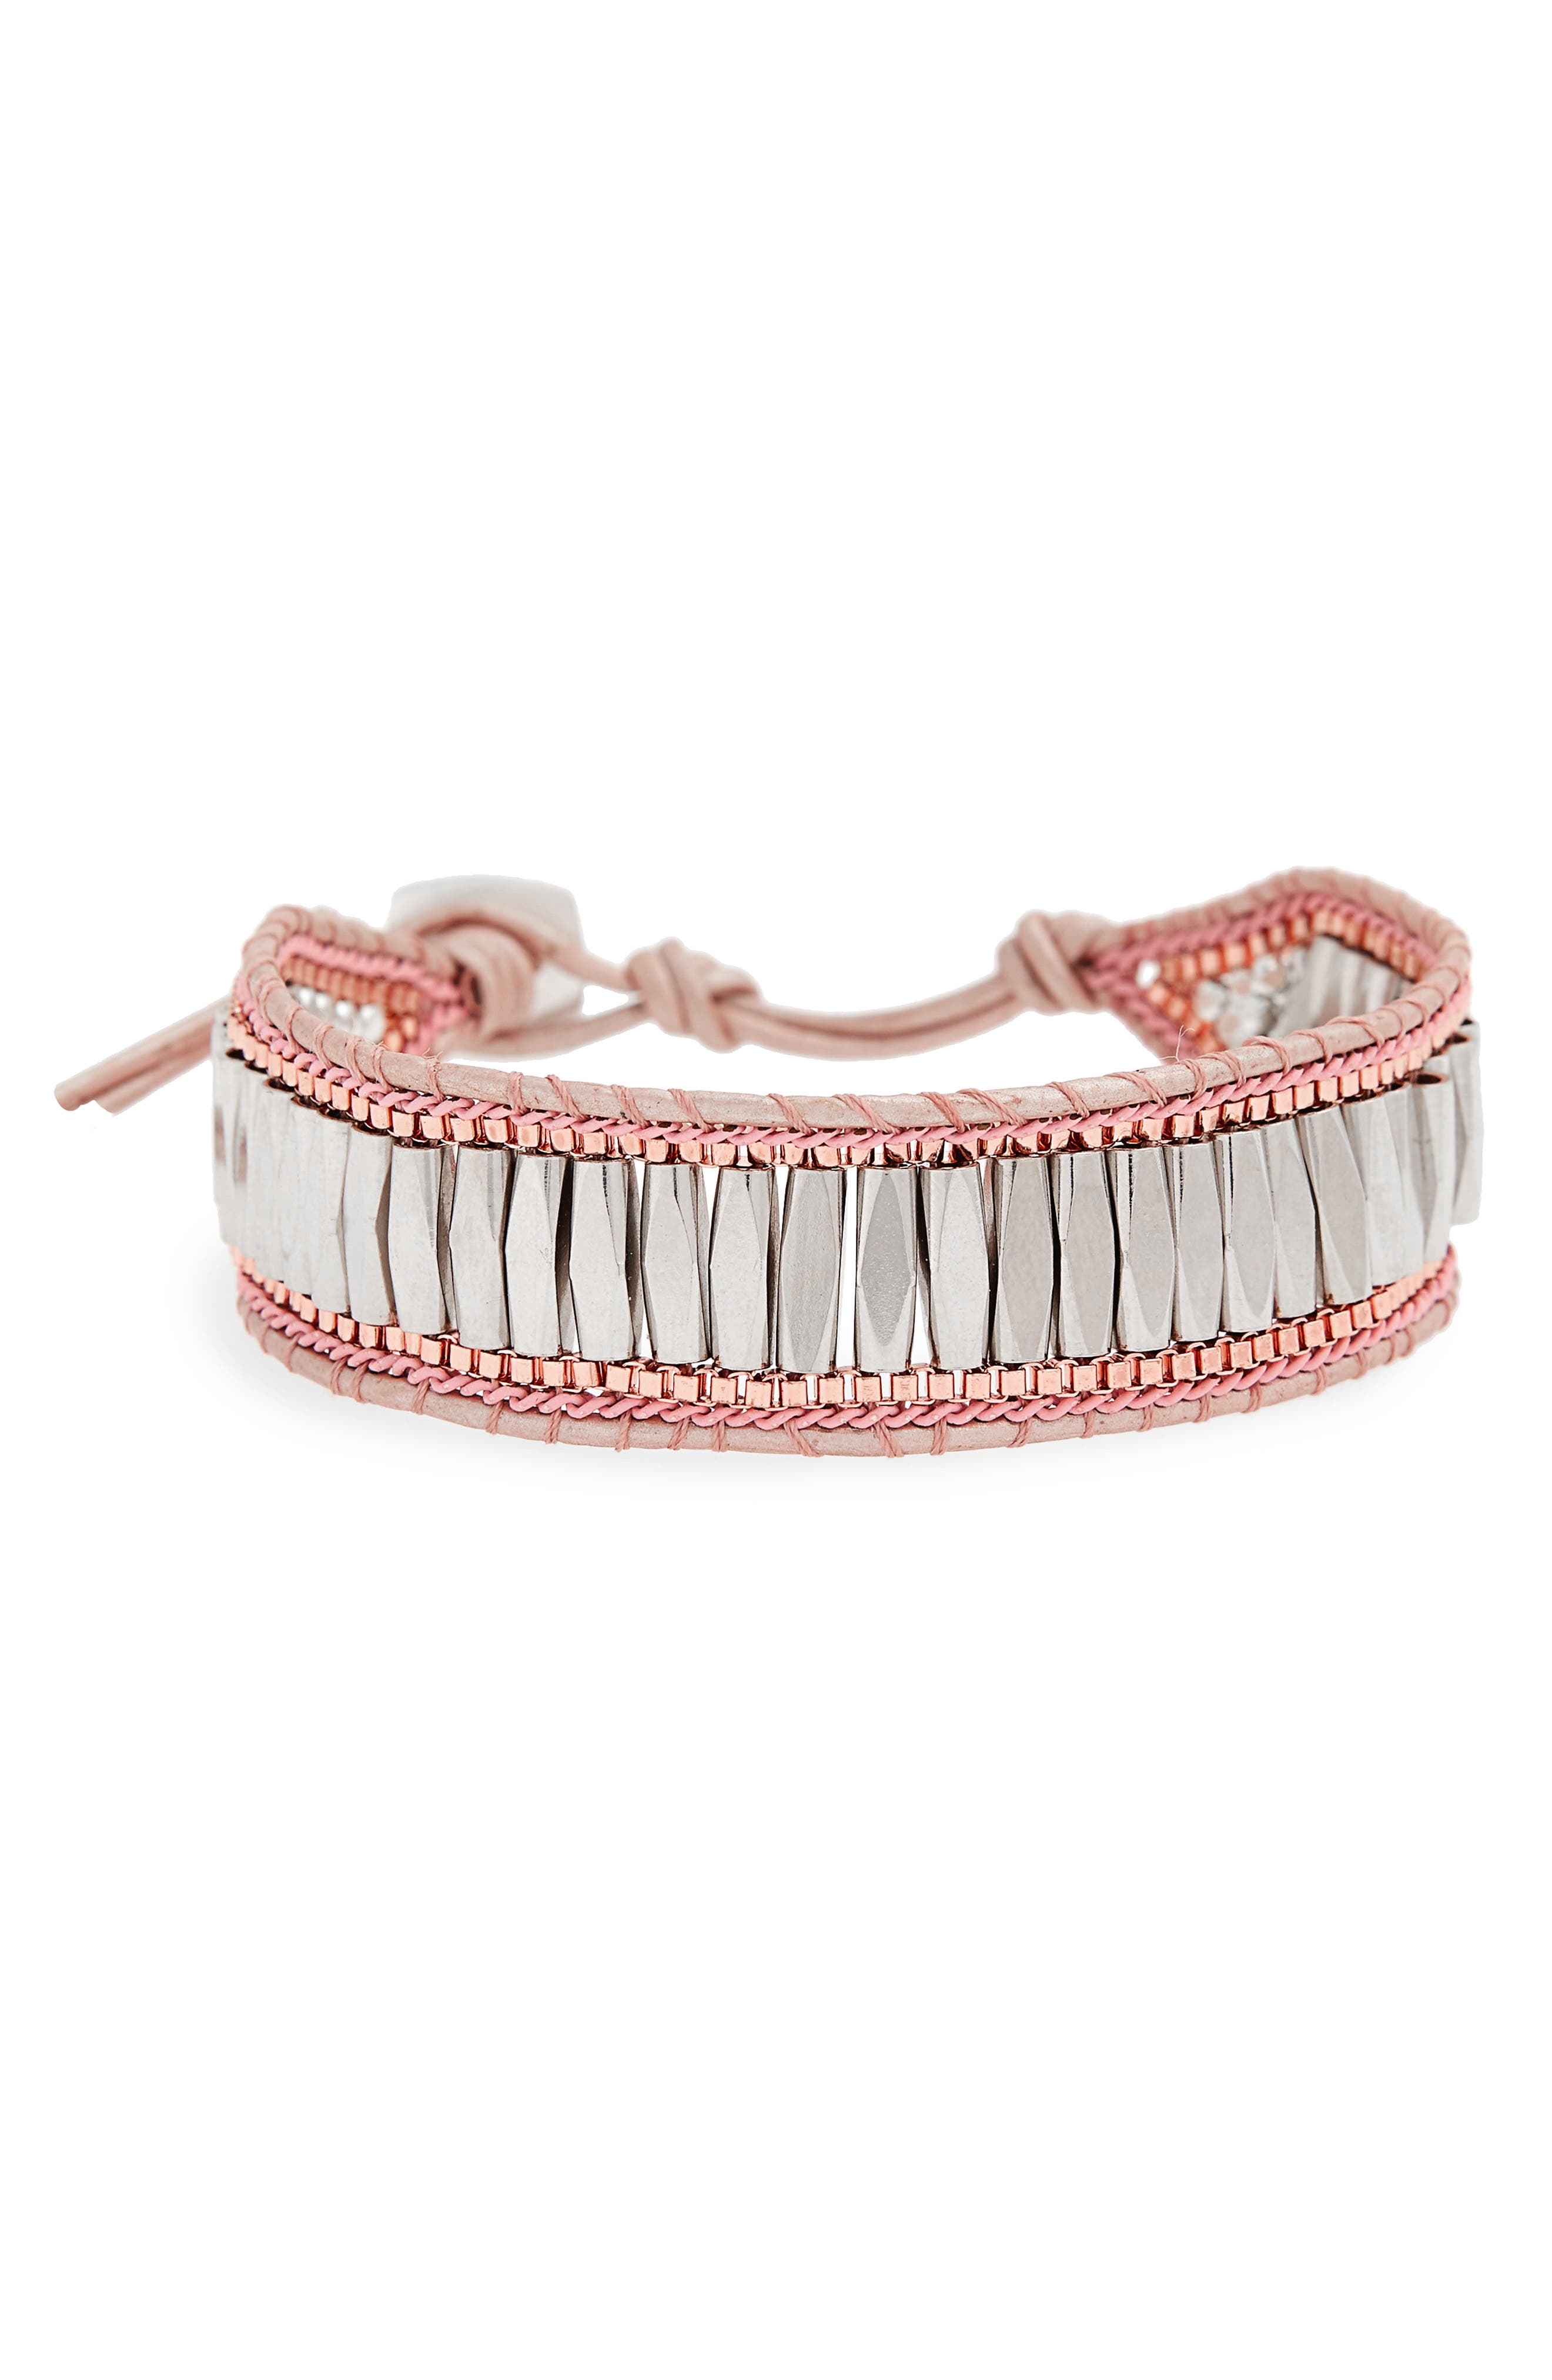 Beaded Leather Bracelet,                             Main thumbnail 1, color,                             650